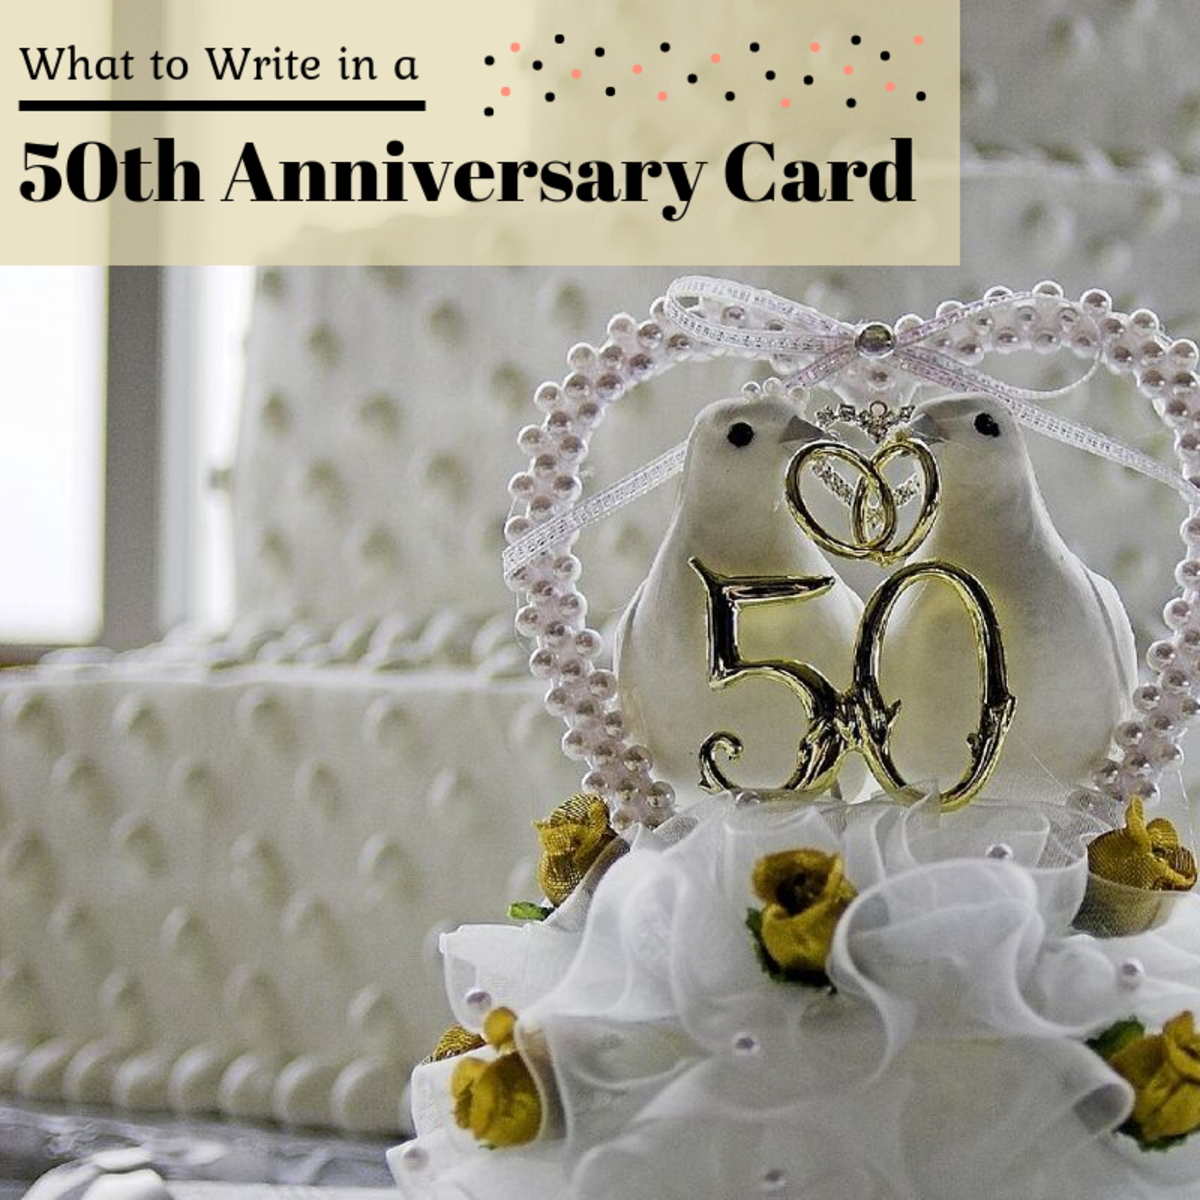 50th Anniversary Wishes What To Write In A Card Holidappy Celebrations